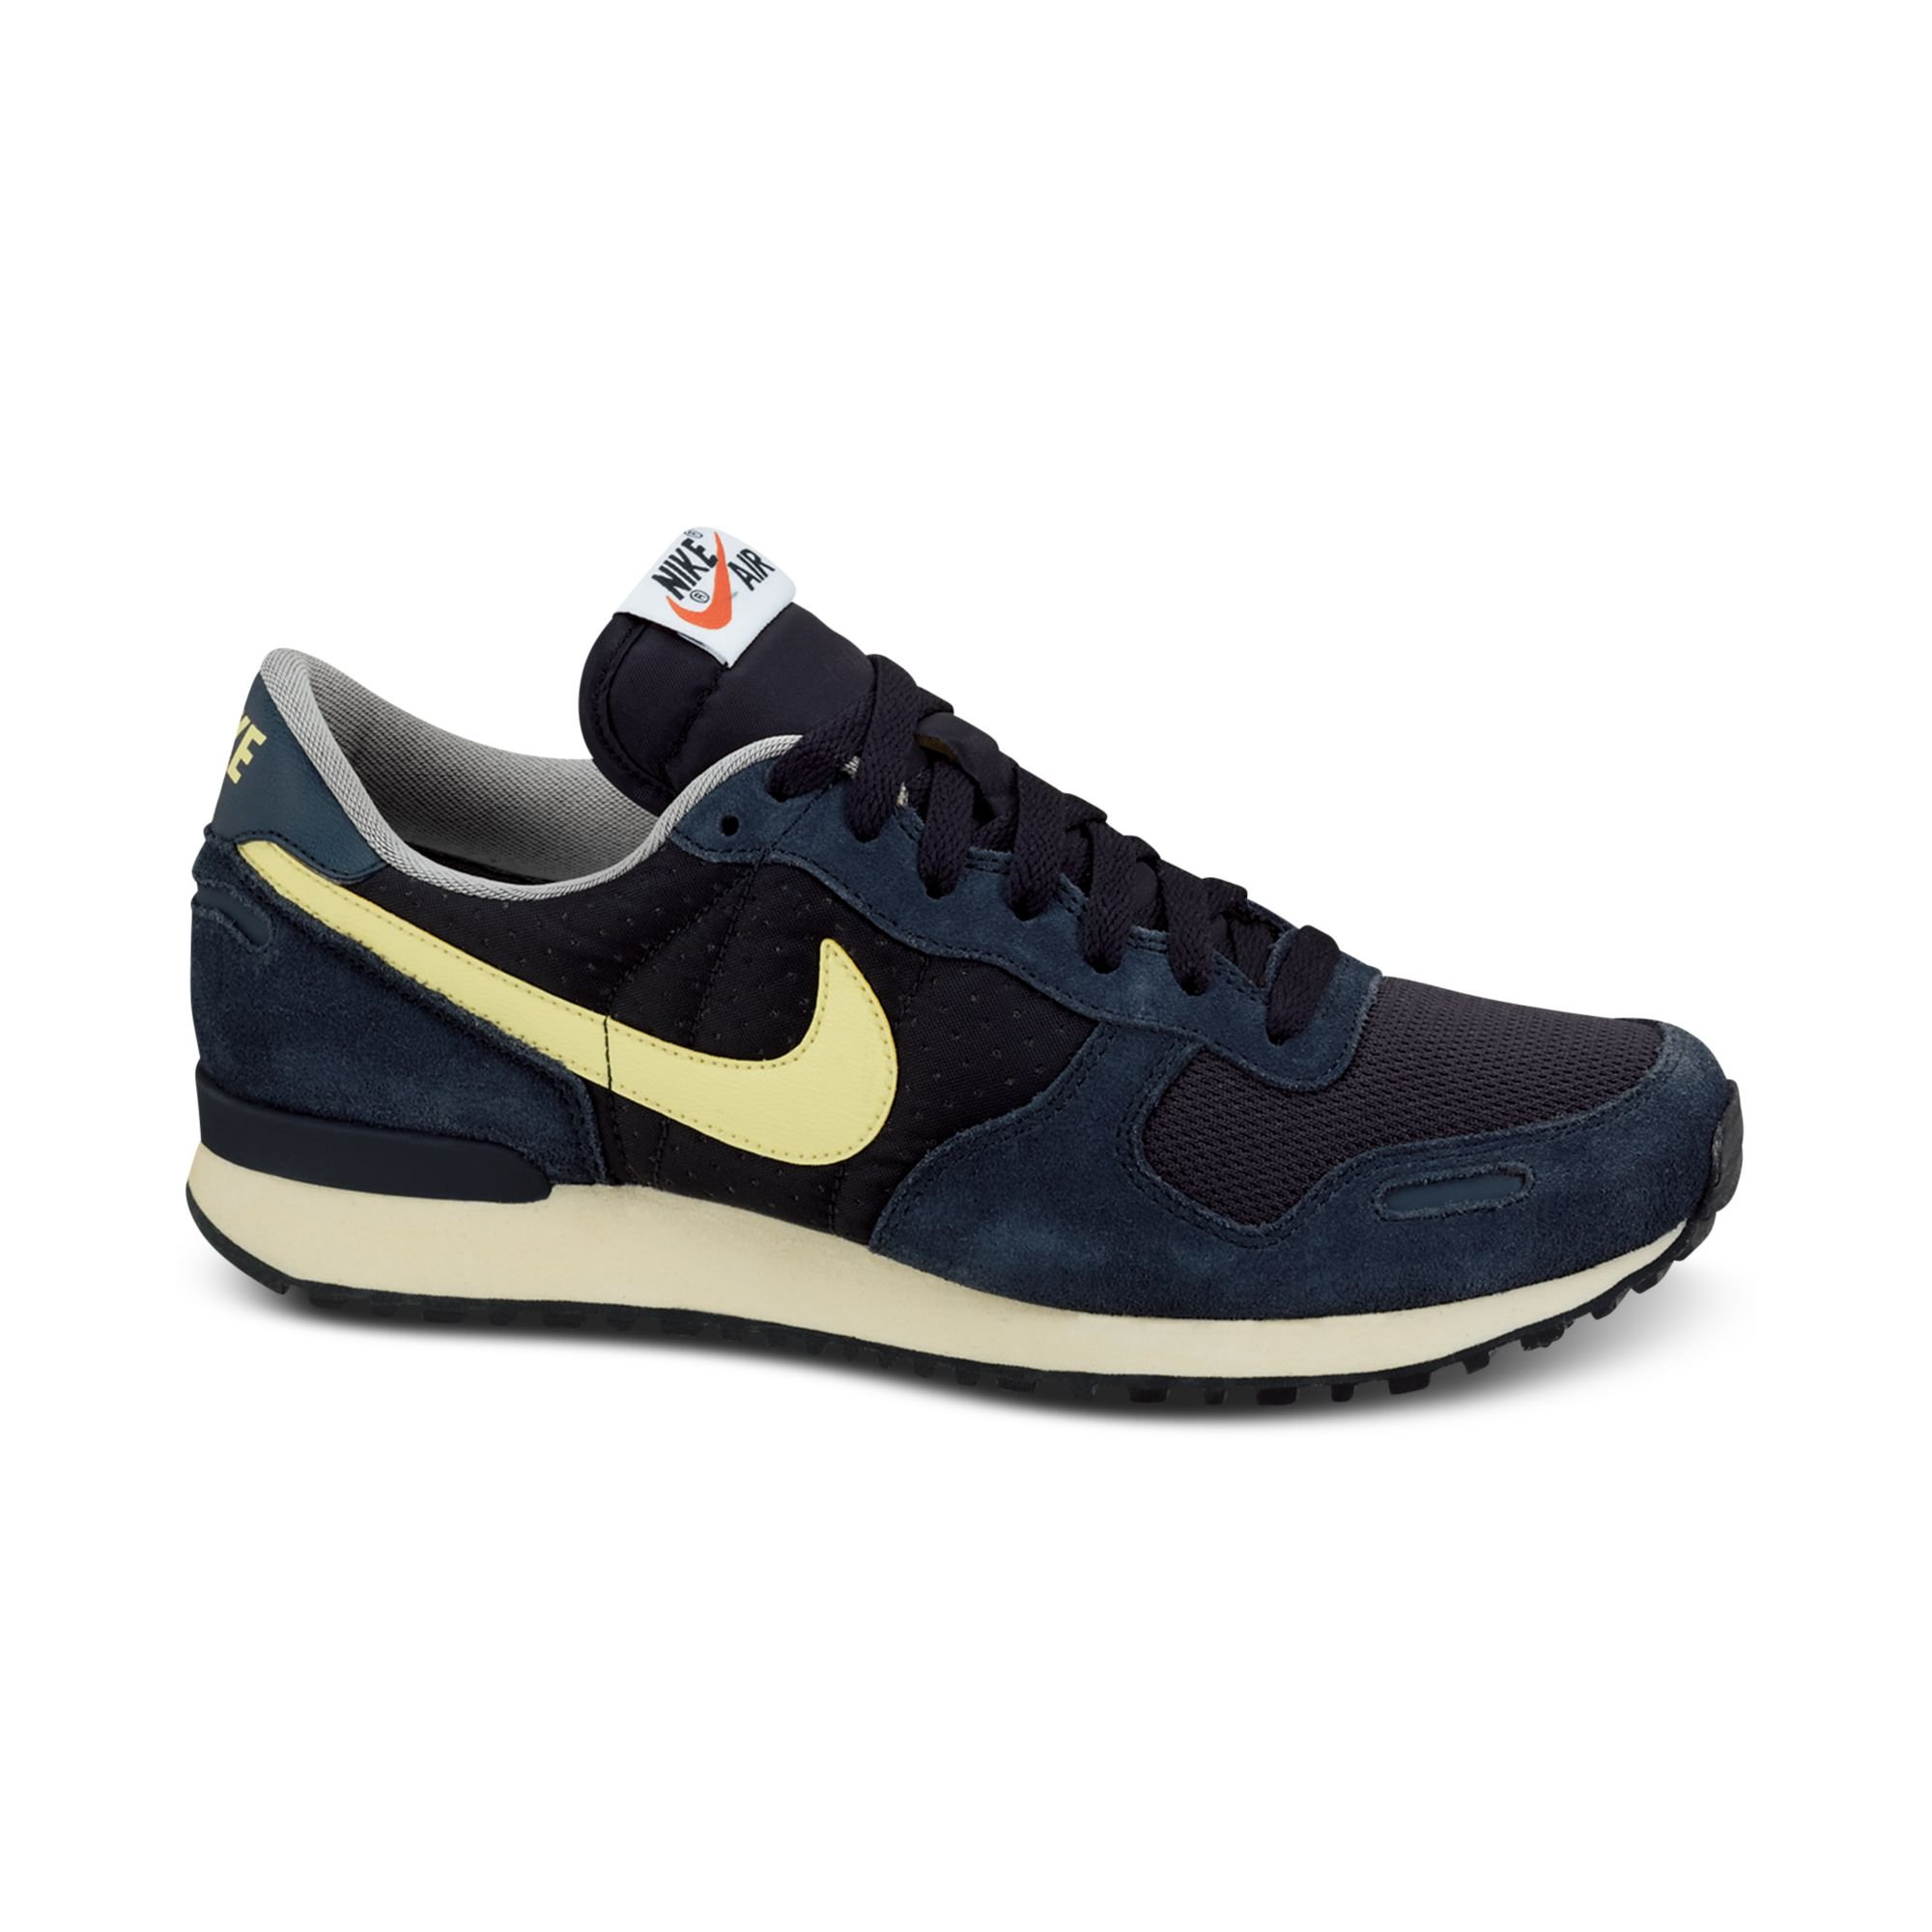 Lyst - Nike Air Vortex Vintage Sneakers in Blue for Men